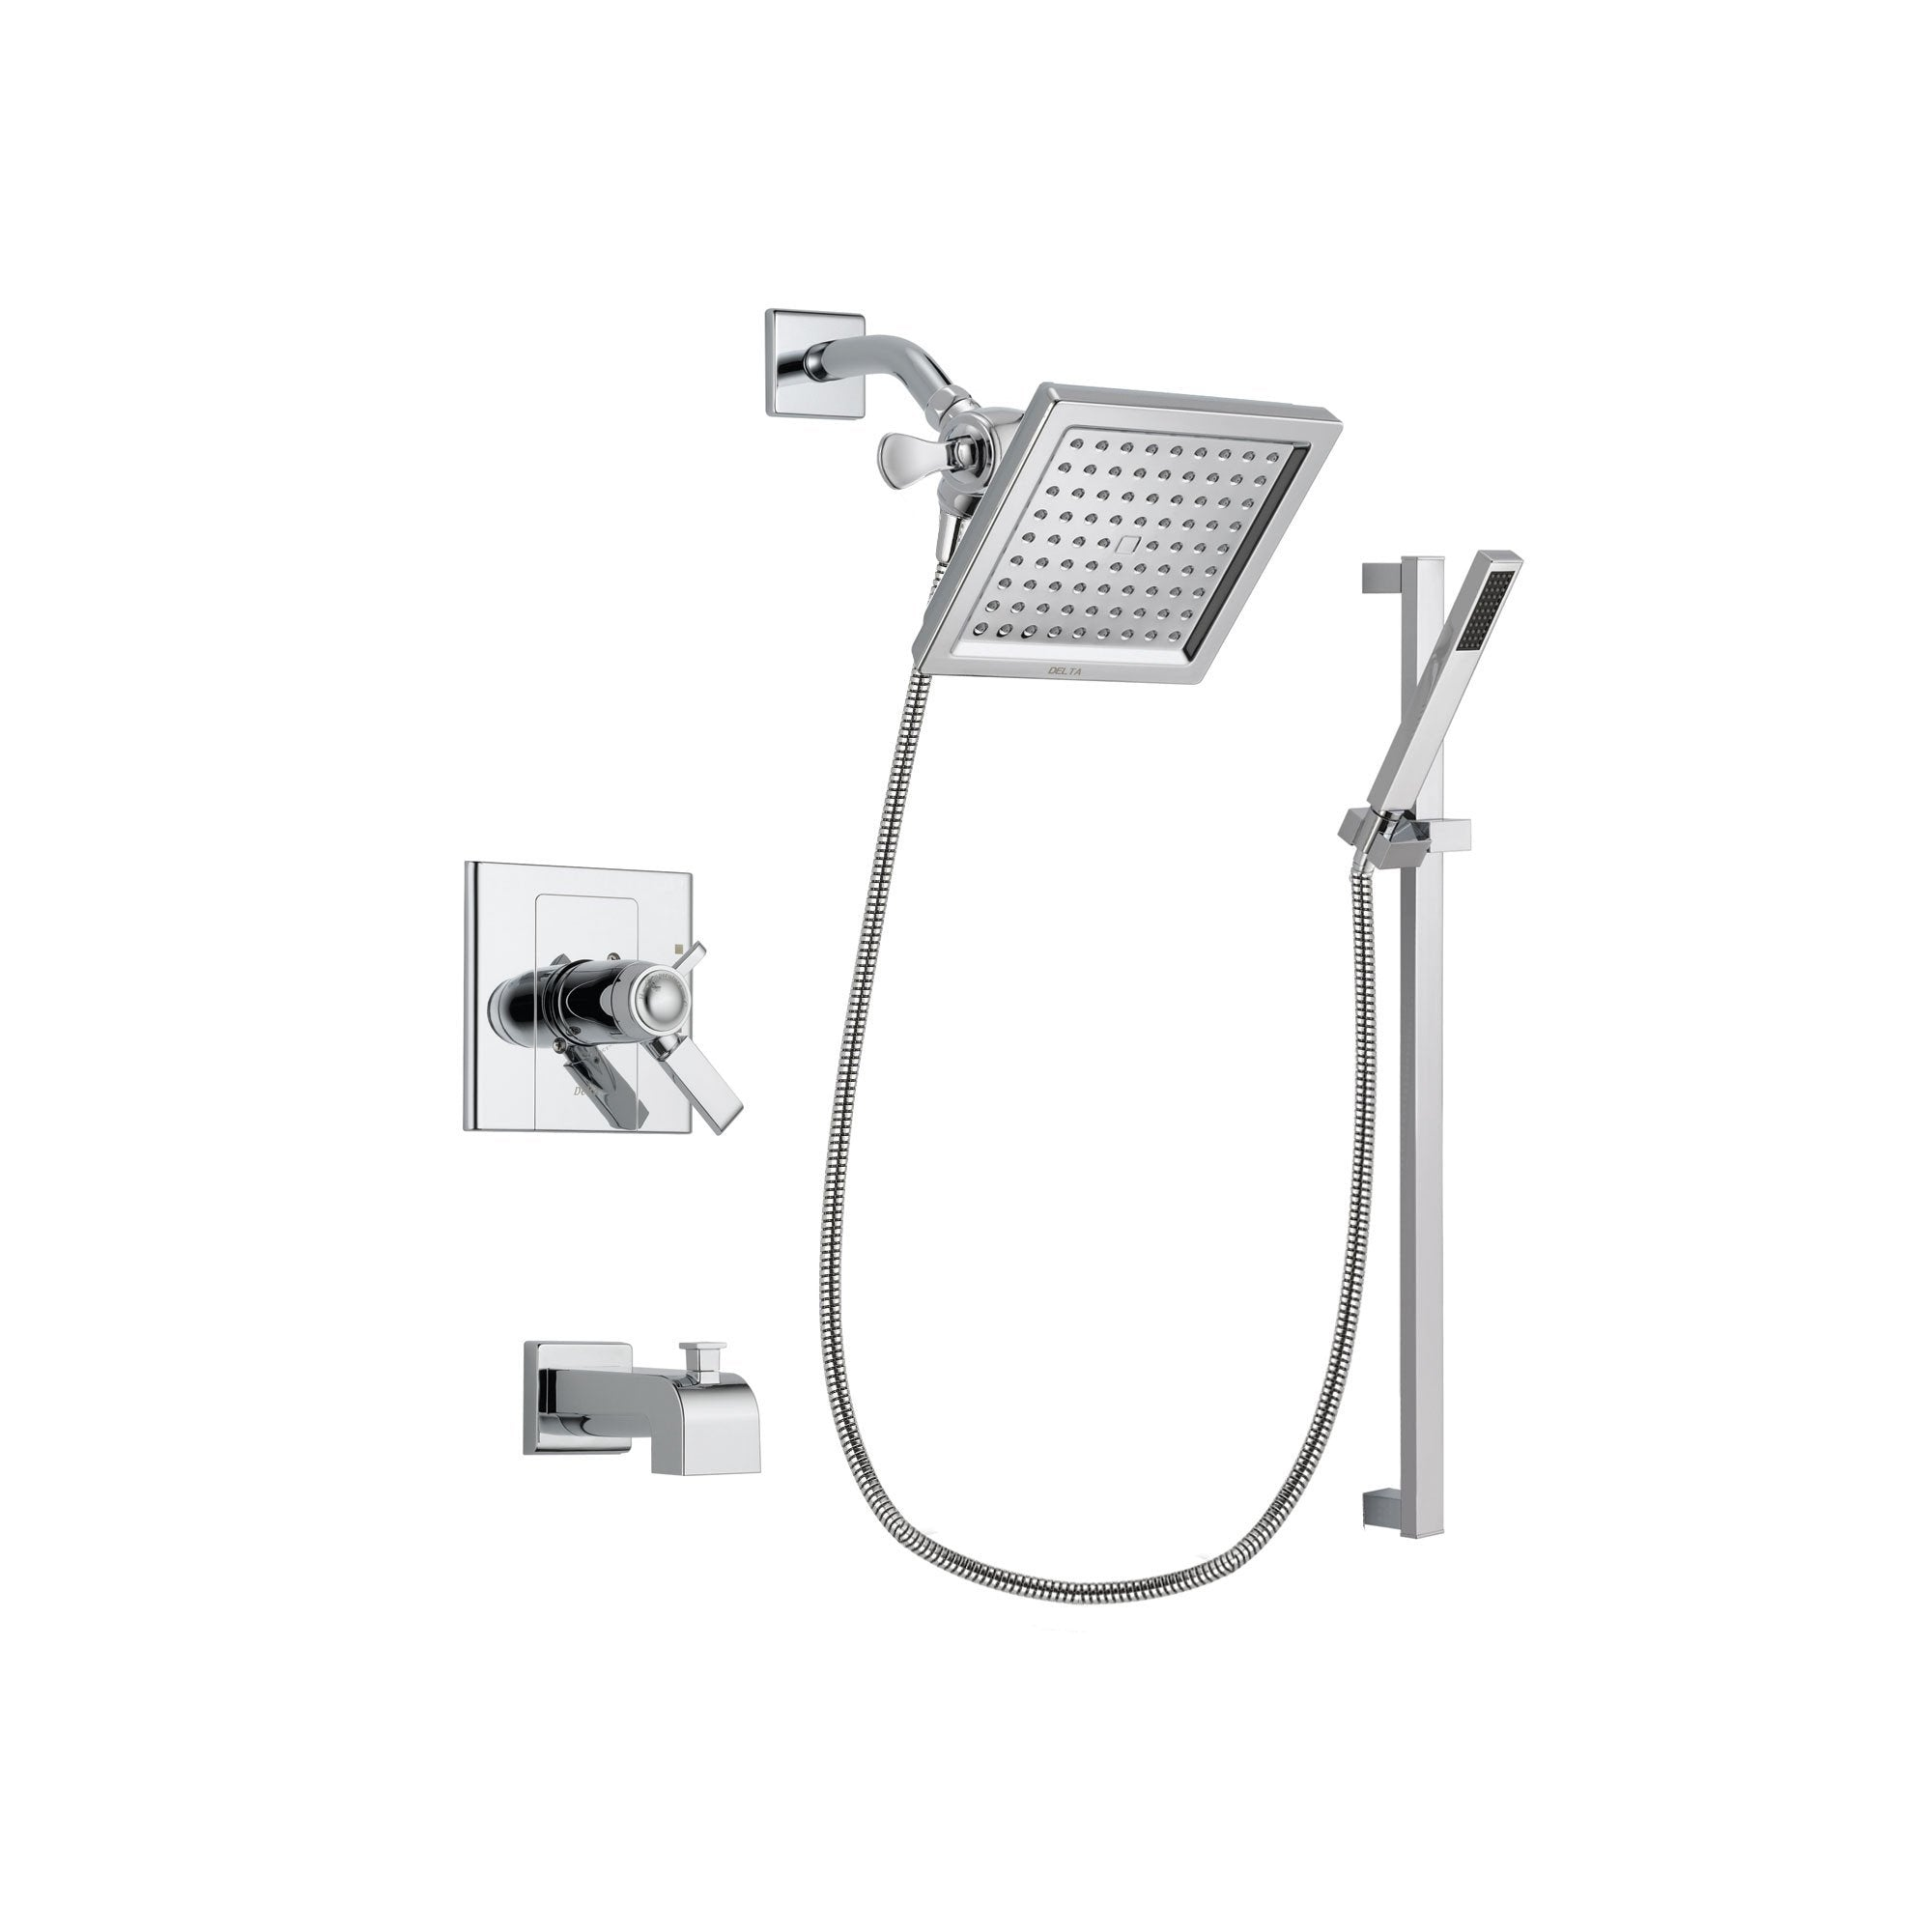 Delta Arzo Chrome Finish Thermostatic Tub and Shower Faucet System Package with 6.5-inch Square Rain Showerhead and Modern Wall Mount Slide Bar with Handheld Shower Spray Includes Rough-in Valve and Tub Spout DSP0262V